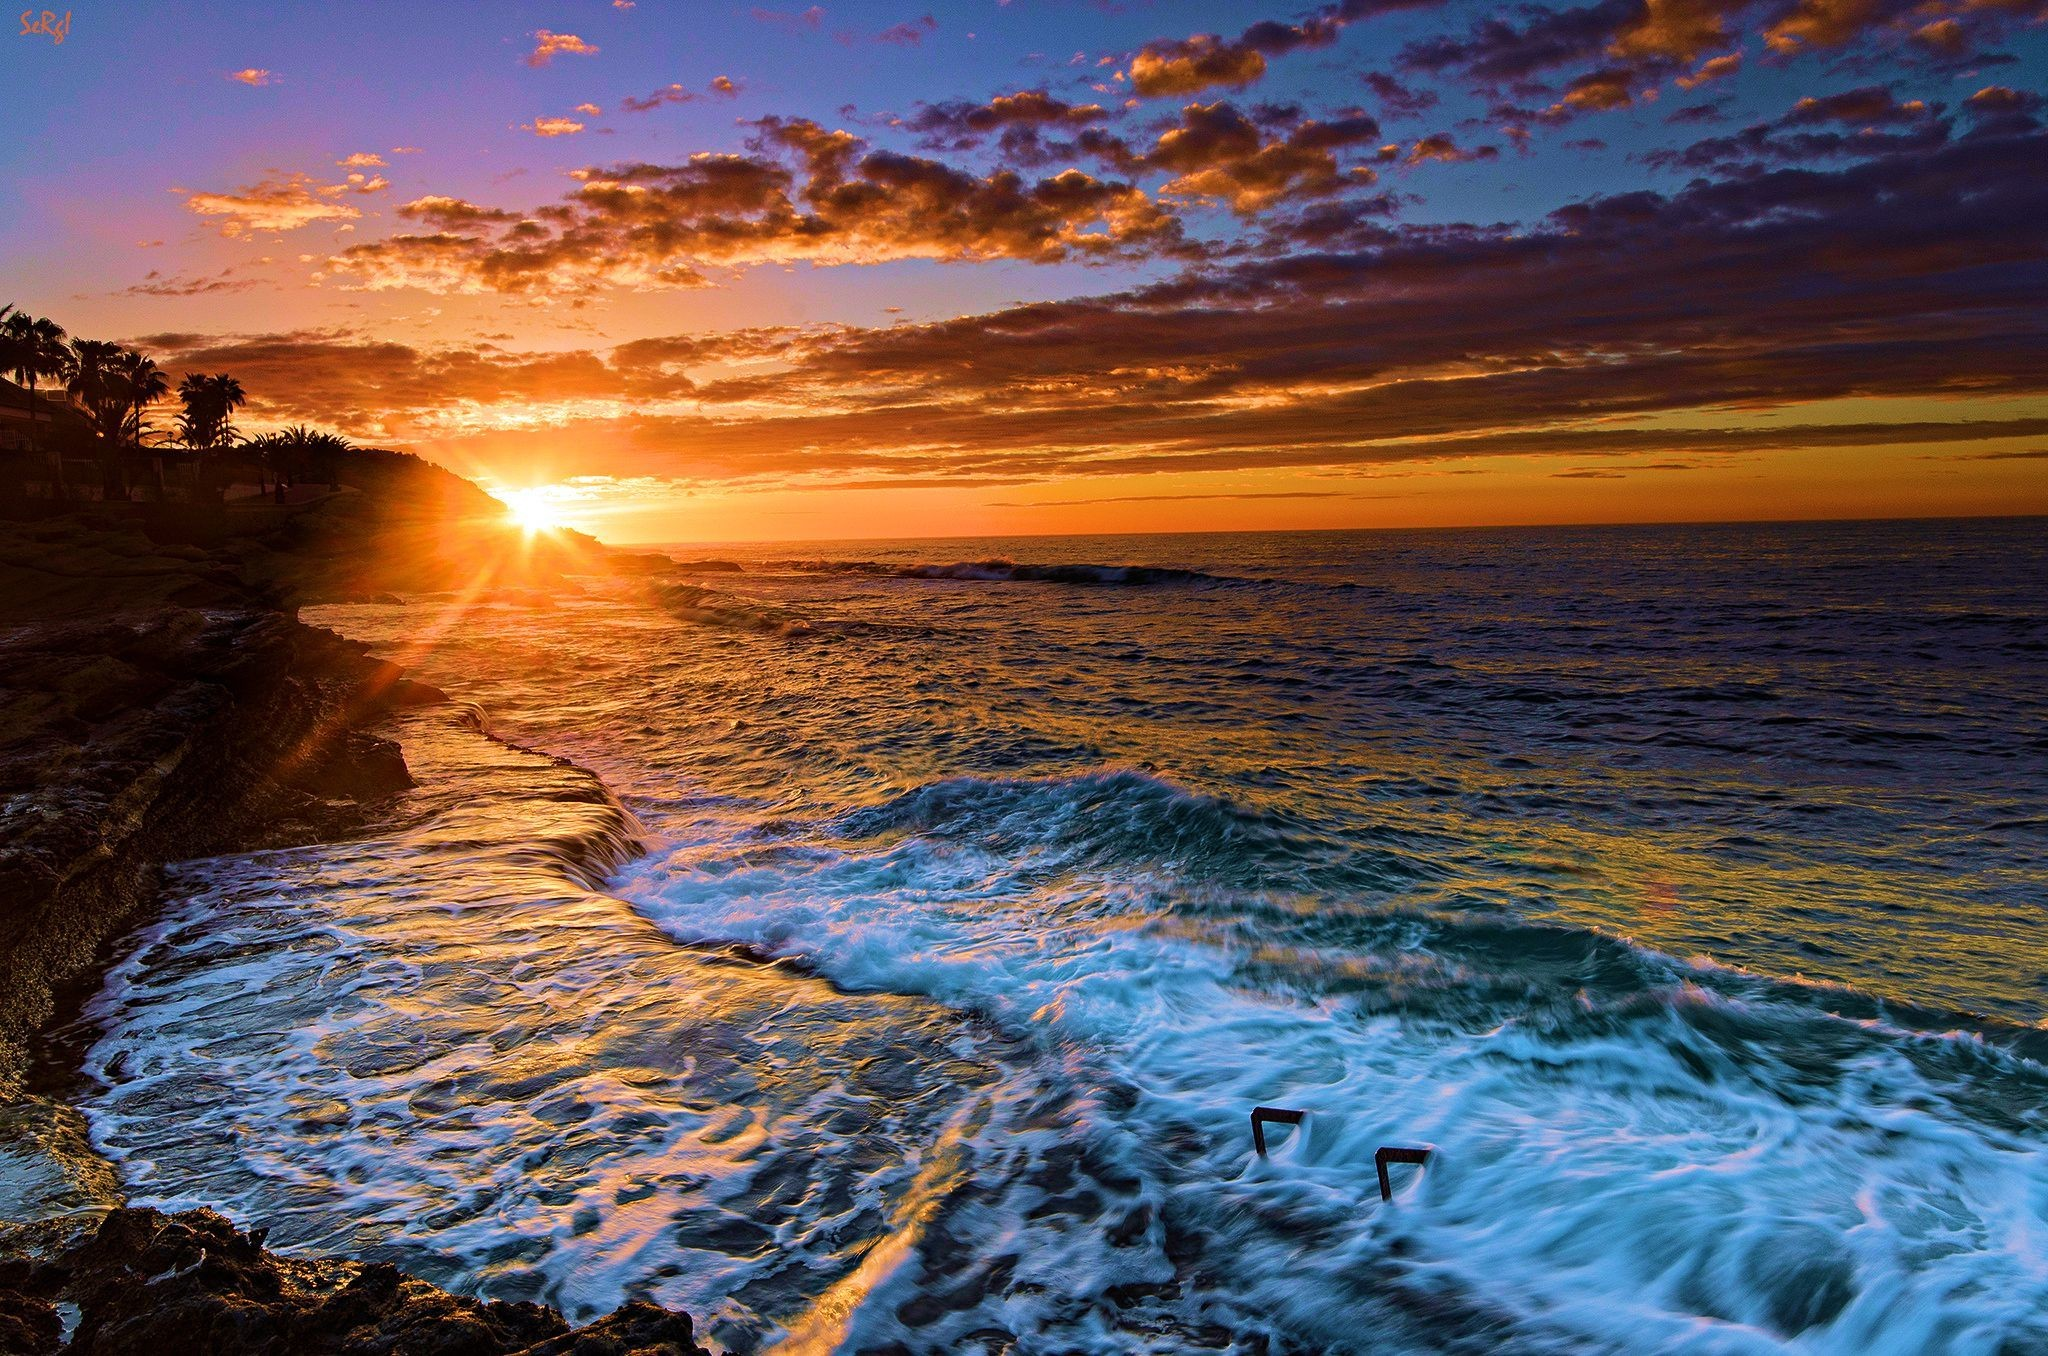 Sunset Desktop Backgrounds Free – Wallpaper Cave